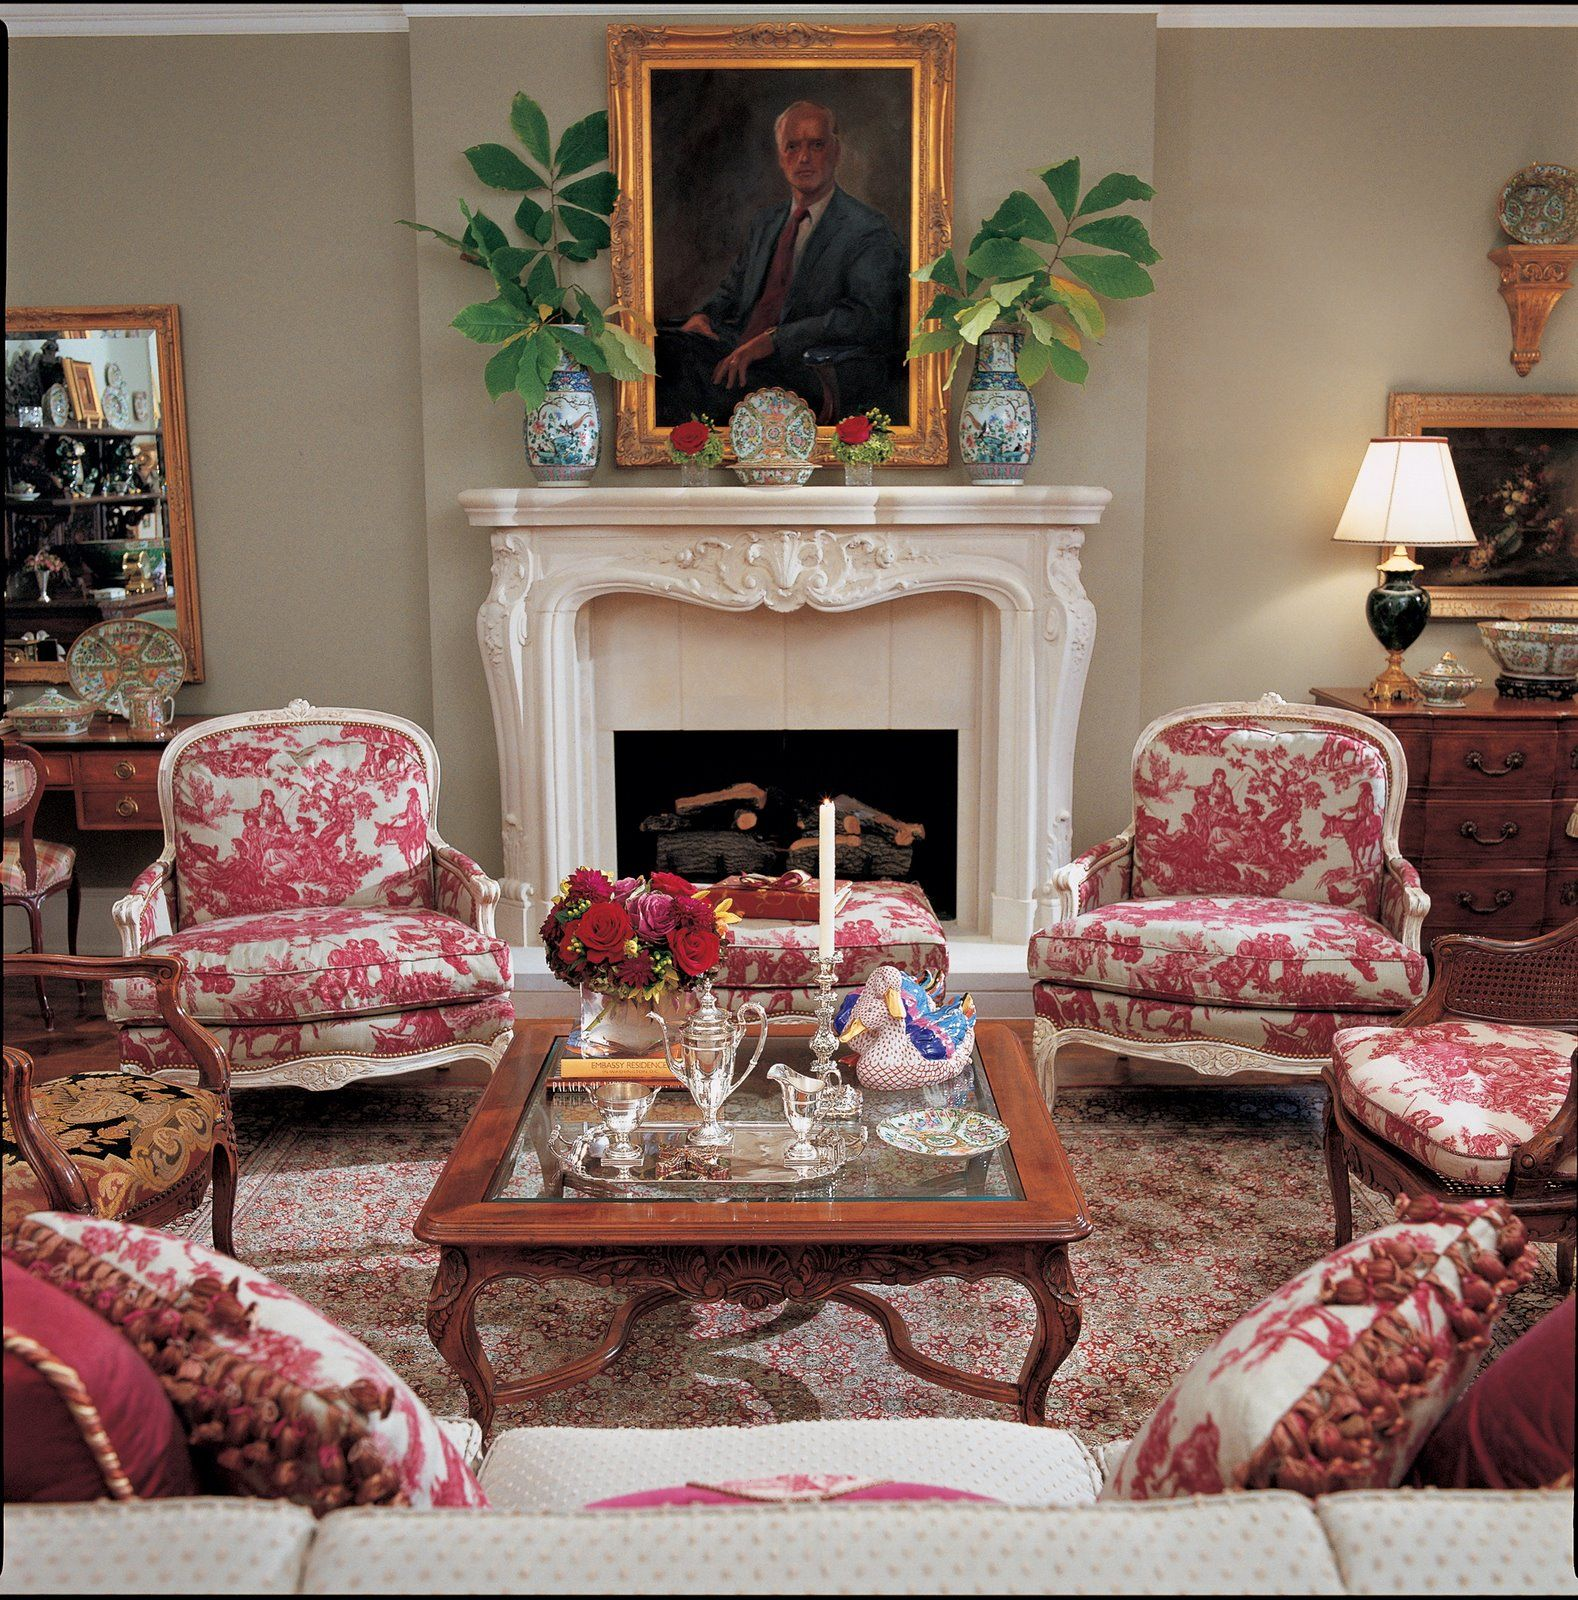 Bedroom Decorating Ideas Totally Toile: Eye For Design: Decorating With Red Toile-Charles Faudree